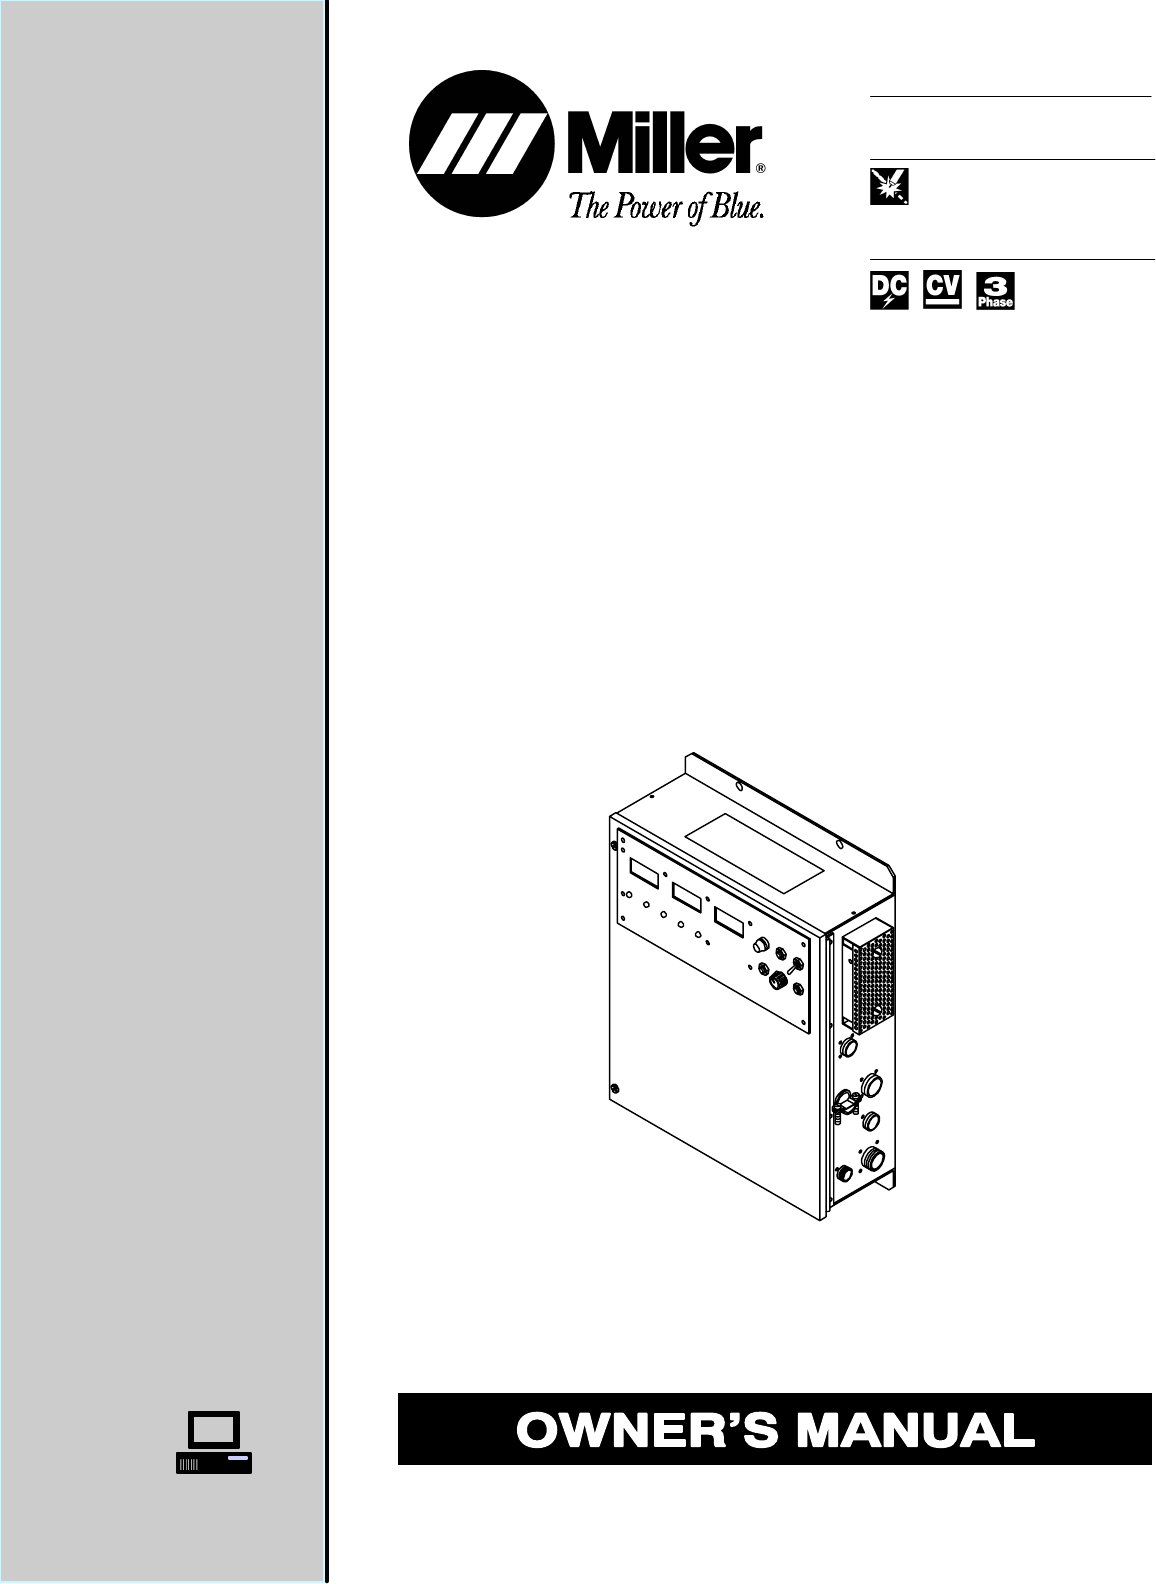 miller electric switch a b b robot interface gas control hub and rh office manualsonline com abb robot manuals abb robot manual pdf